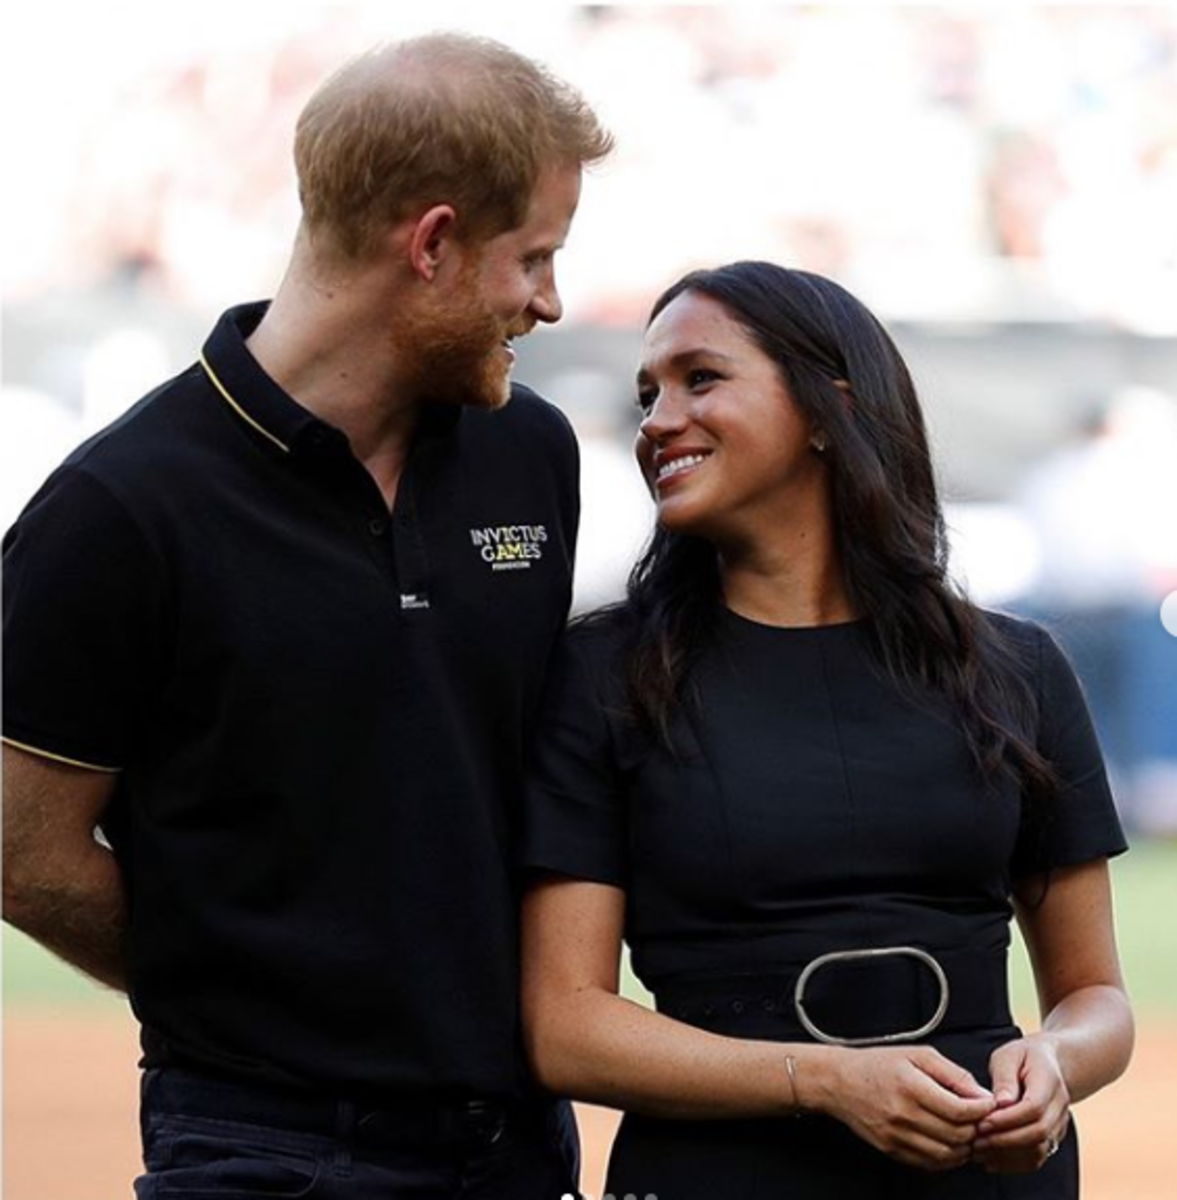 Prince Harry and Meghan Markle Have Had Three Nannies for Archie